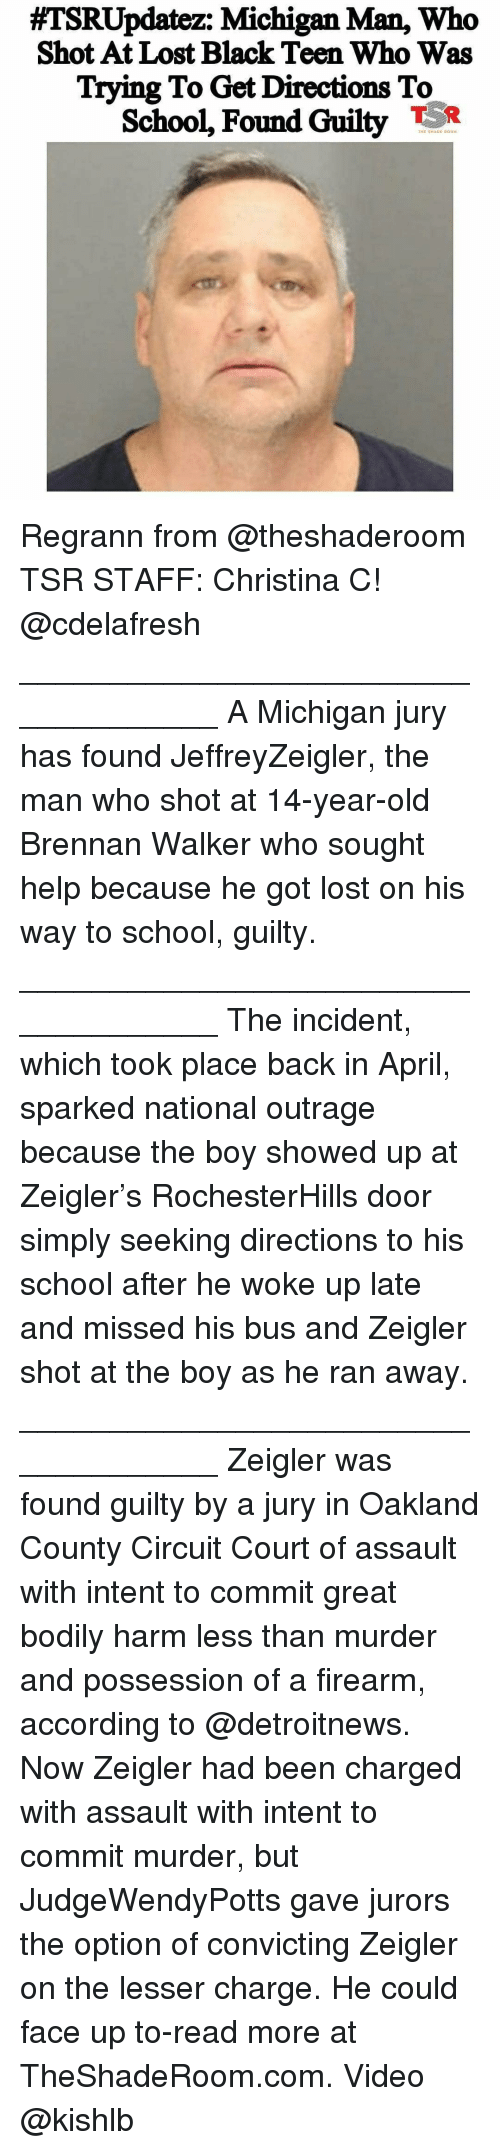 Memes, School, and Lost:  #7SRUpdatez: Michigan Man, who  Shot At Lost Black Teen Who Was  Trying To Get Directions To  School, Found Guilty TR Regrann from @theshaderoom TSR STAFF: Christina C! @cdelafresh ____________________________________ A Michigan jury has found JeffreyZeigler, the man who shot at 14-year-old Brennan Walker who sought help because he got lost on his way to school, guilty. ____________________________________ The incident, which took place back in April, sparked national outrage because the boy showed up at Zeigler's RochesterHills door simply seeking directions to his school after he woke up late and missed his bus and Zeigler shot at the boy as he ran away. ____________________________________ Zeigler was found guilty by a jury in Oakland County Circuit Court of assault with intent to commit great bodily harm less than murder and possession of a firearm, according to @detroitnews. Now Zeigler had been charged with assault with intent to commit murder, but JudgeWendyPotts gave jurors the option of convicting Zeigler on the lesser charge. He could face up to-read more at TheShadeRoom.com. Video @kishlb